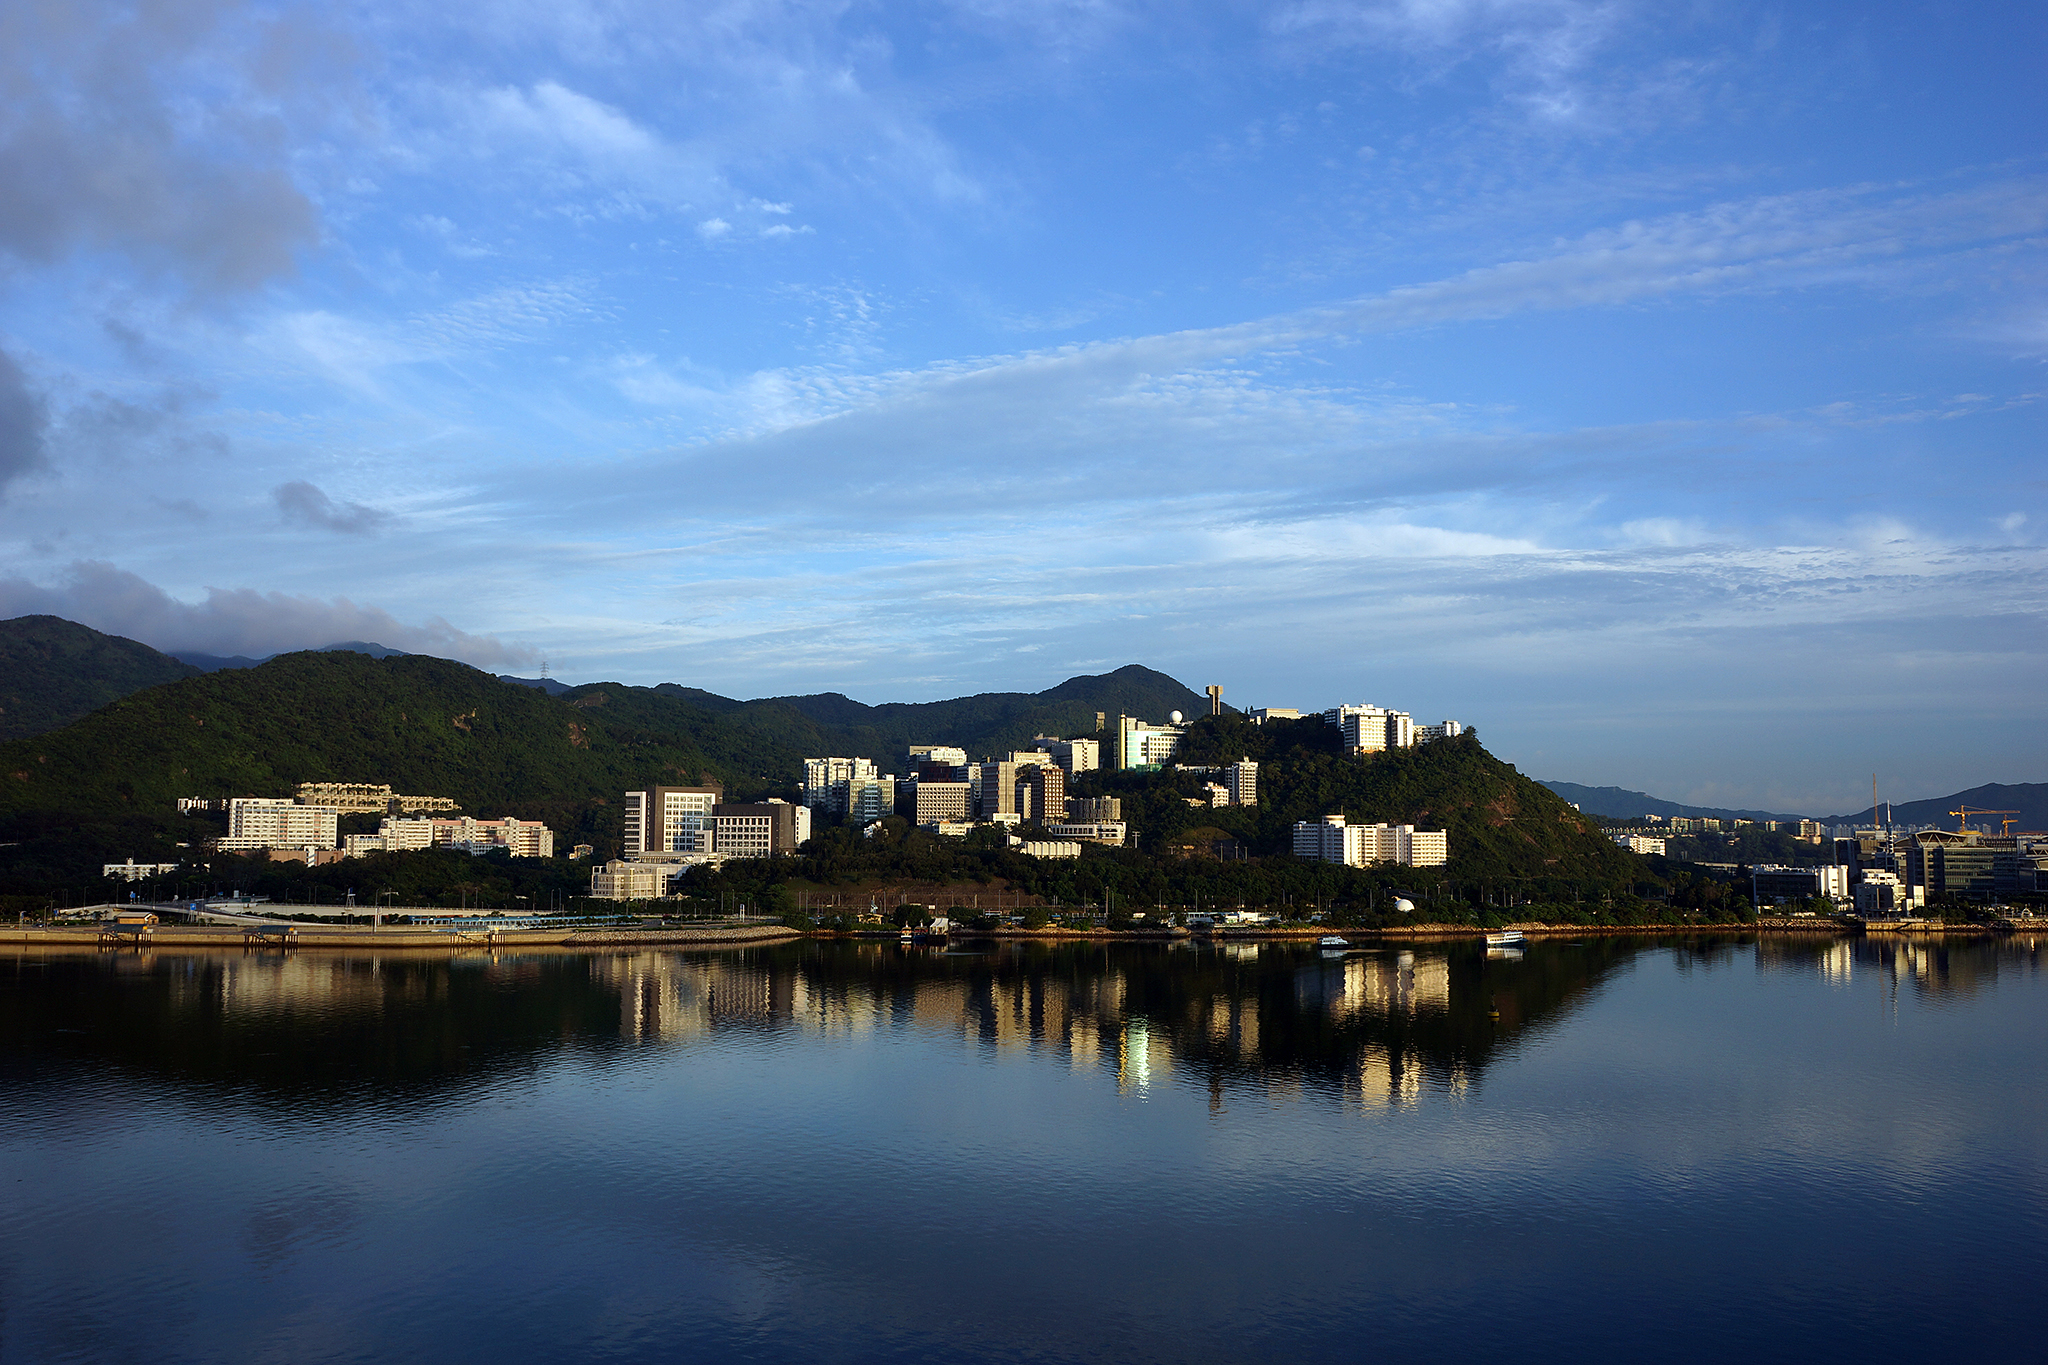 To view the entire set of 20 photos of CUHK (at a higher resolution of ...